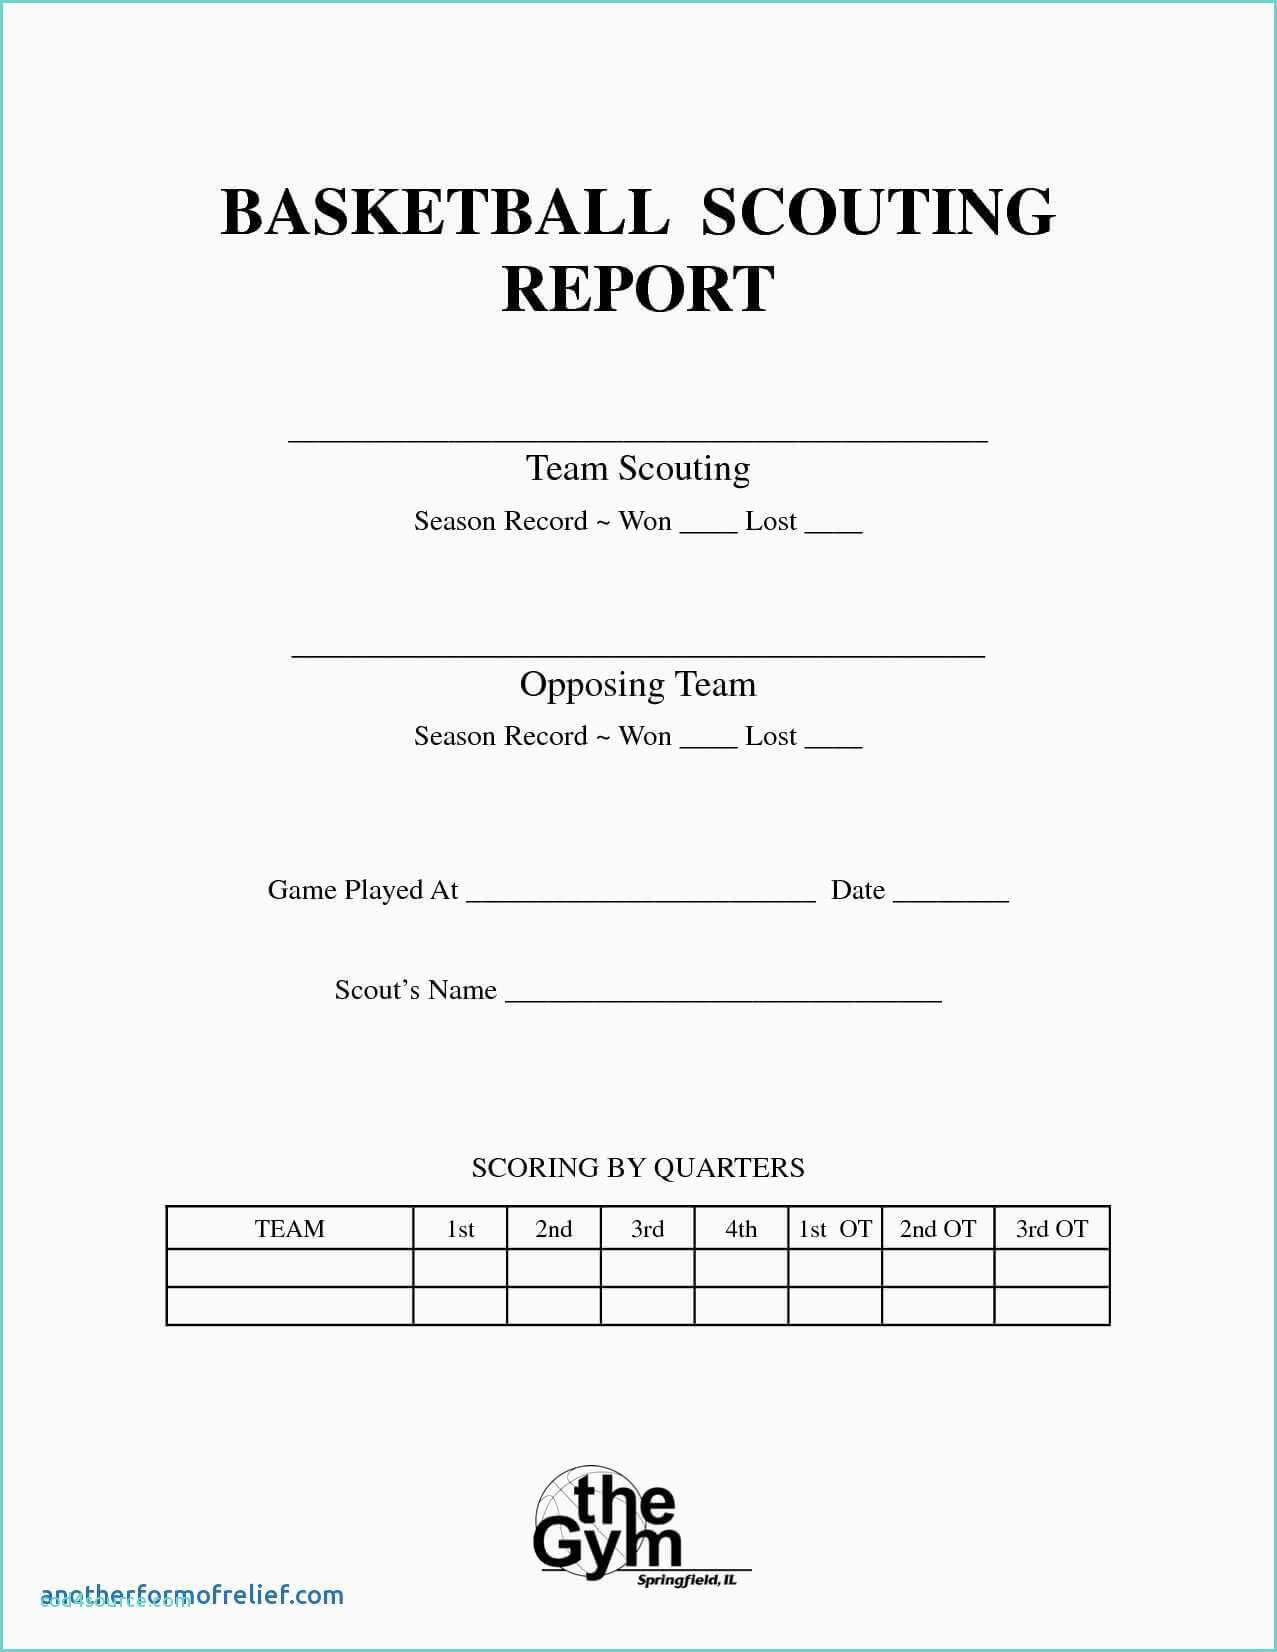 Bowling Spreadsheet And Basketball Scouting Report Template pertaining to Scouting Report Basketball Template